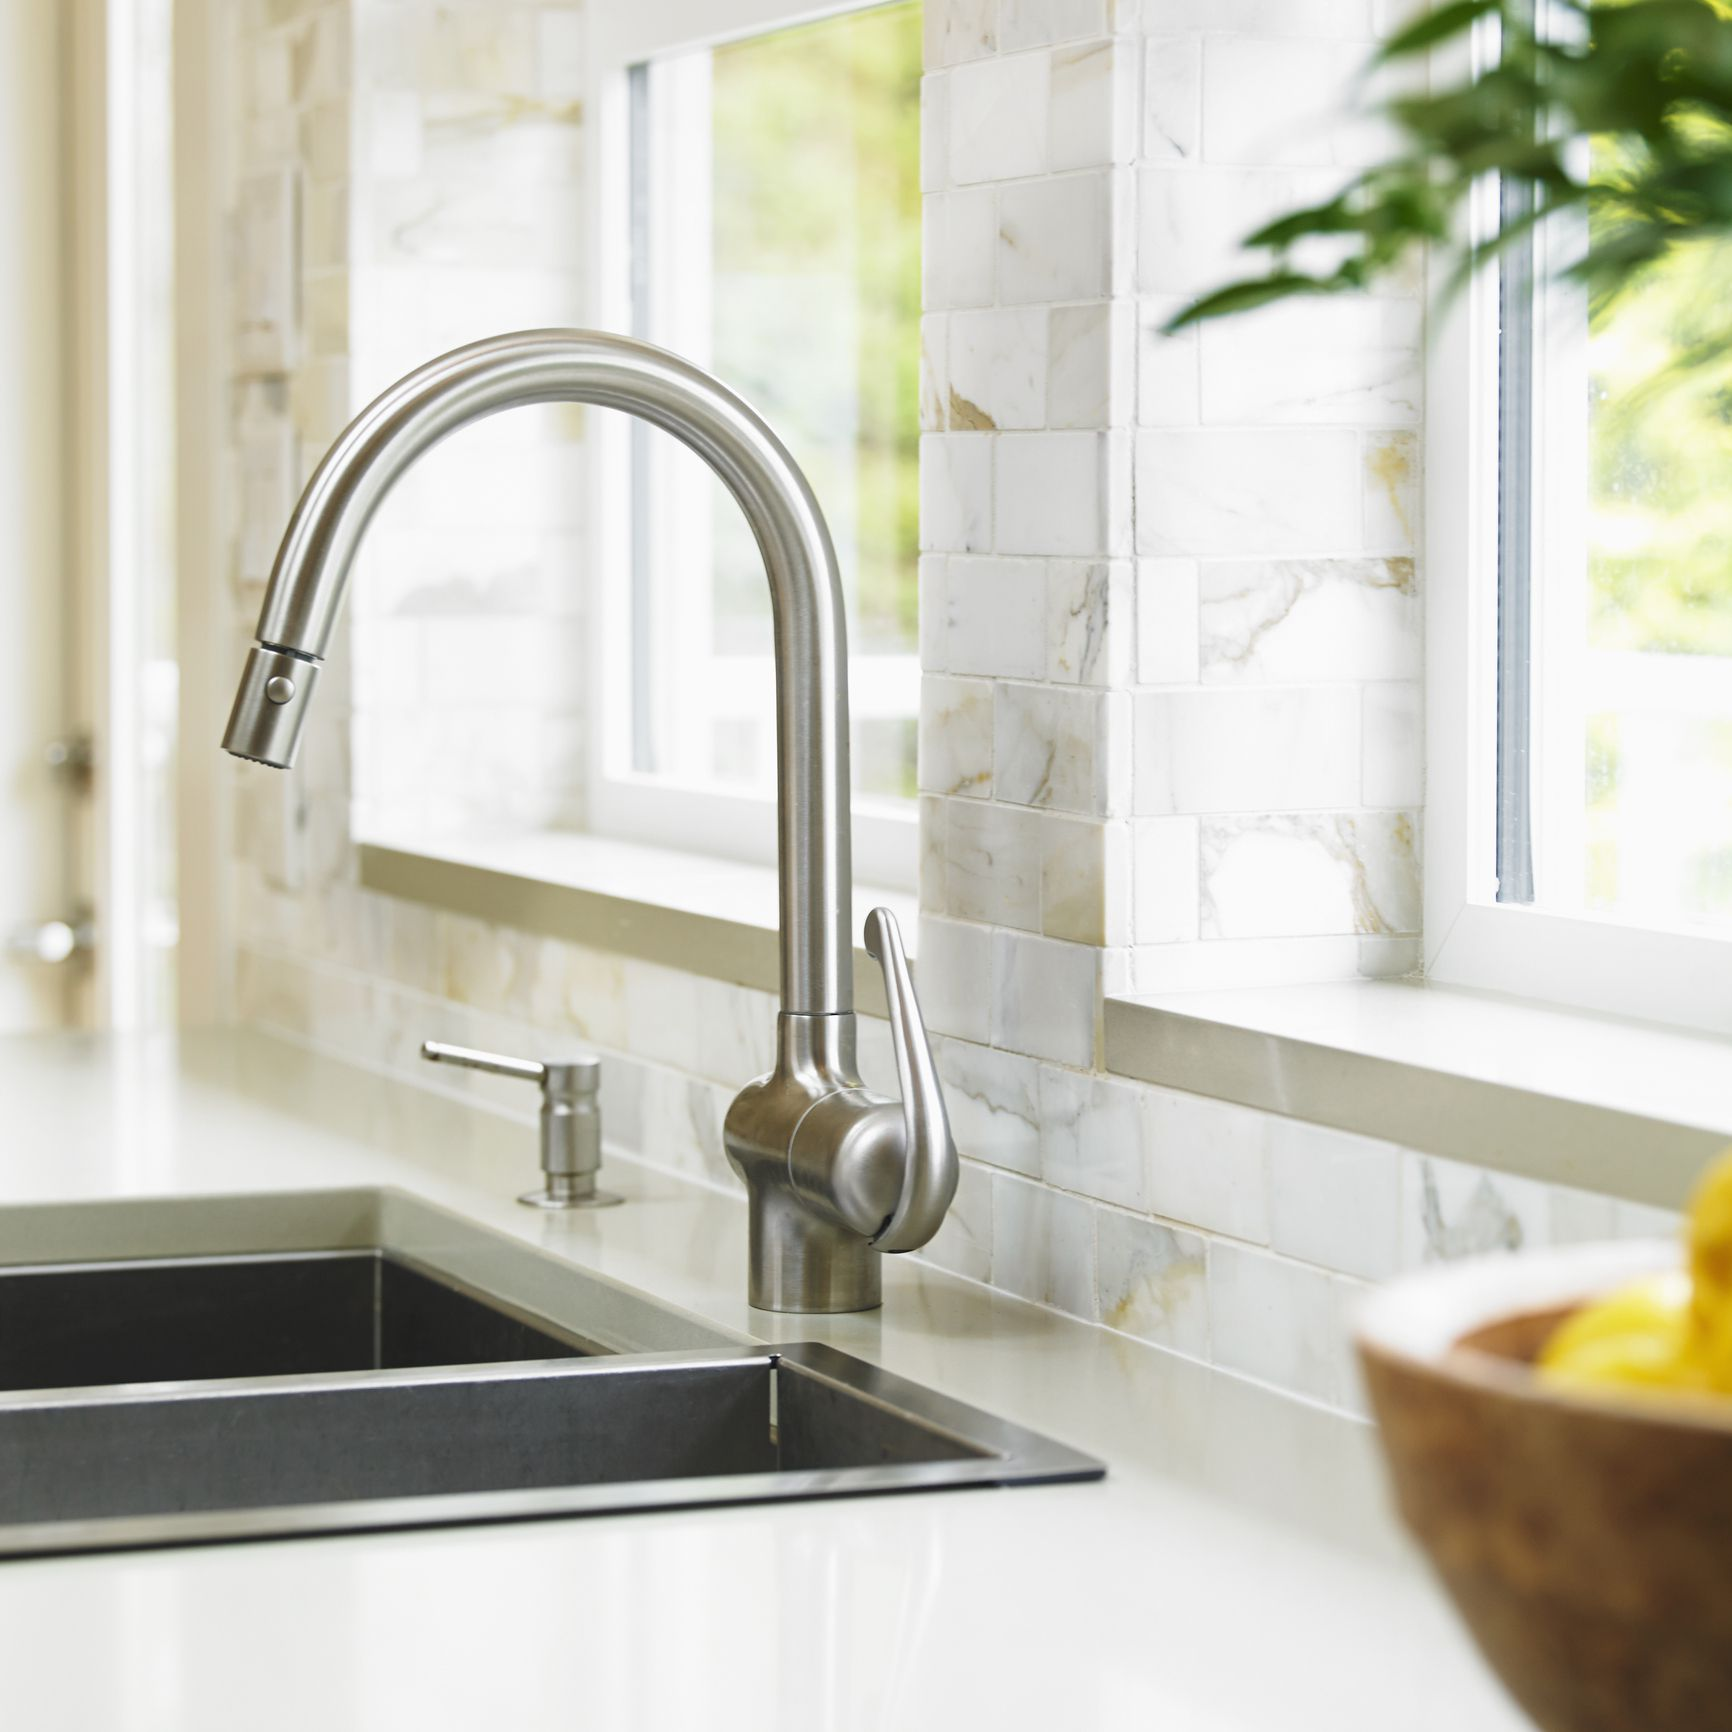 Guide to Installing a Moen Kitchen Faucet